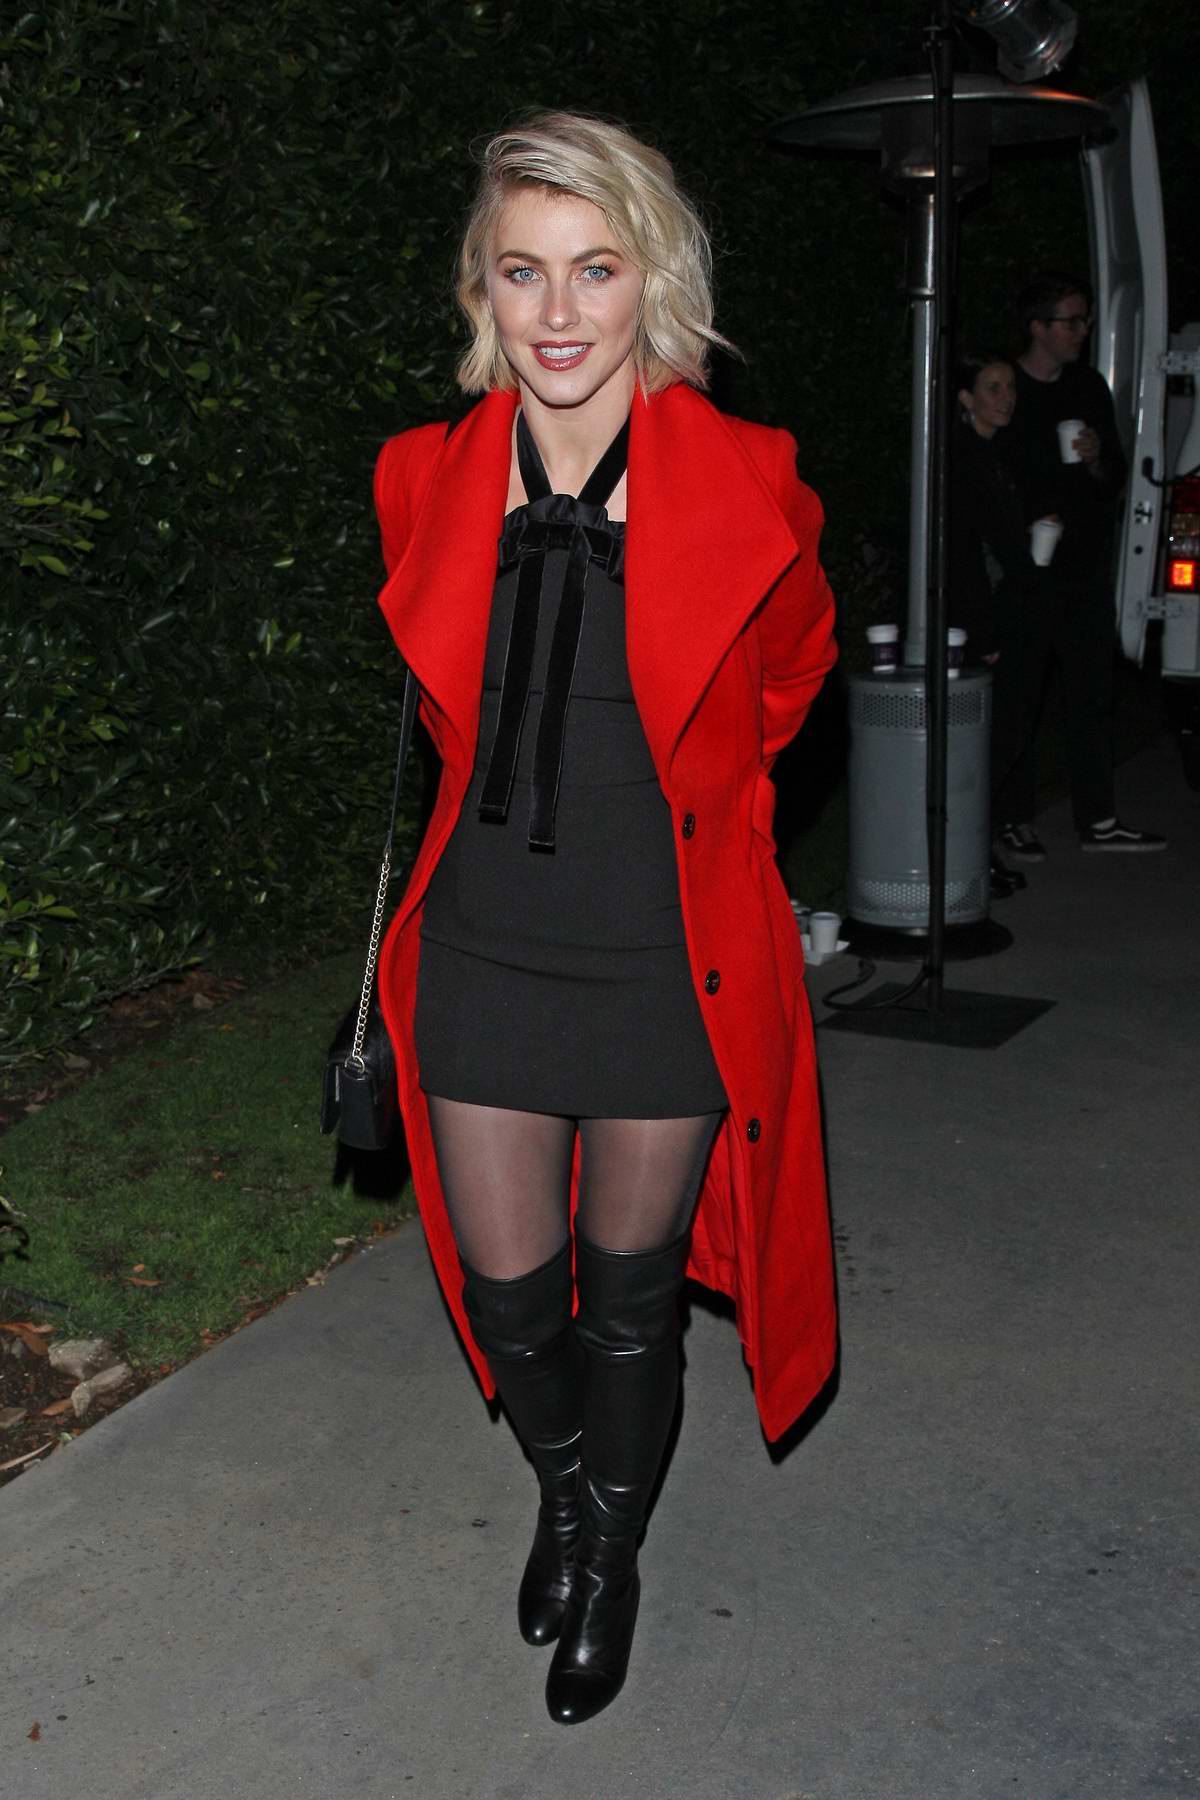 Julianne Hough seen wearing a bright red coat at Jennifer Klein's Holiday Party in Los Angeles